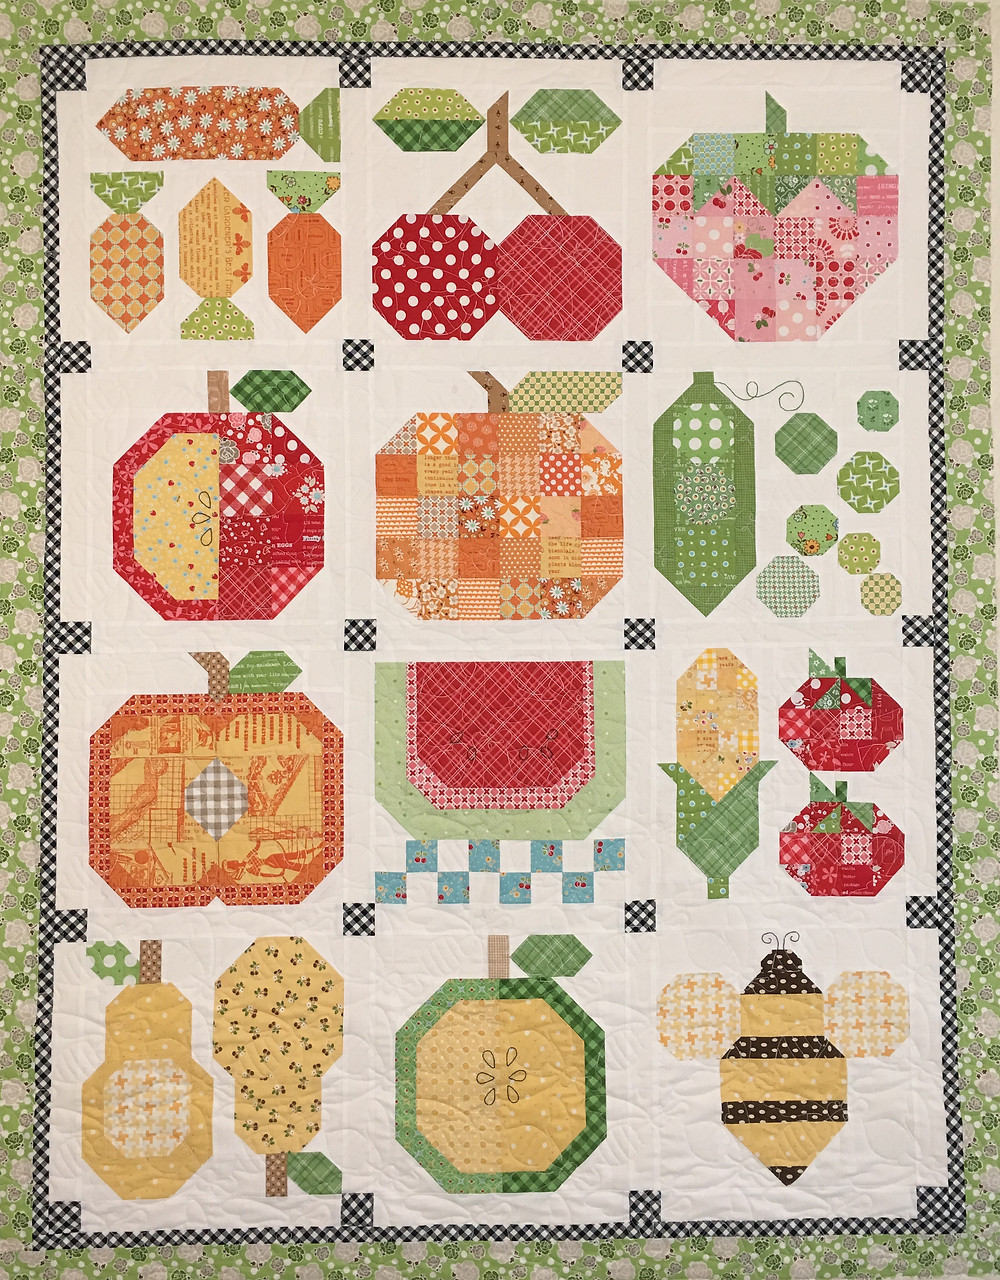 Vegetable Quilt by Deb Taylor